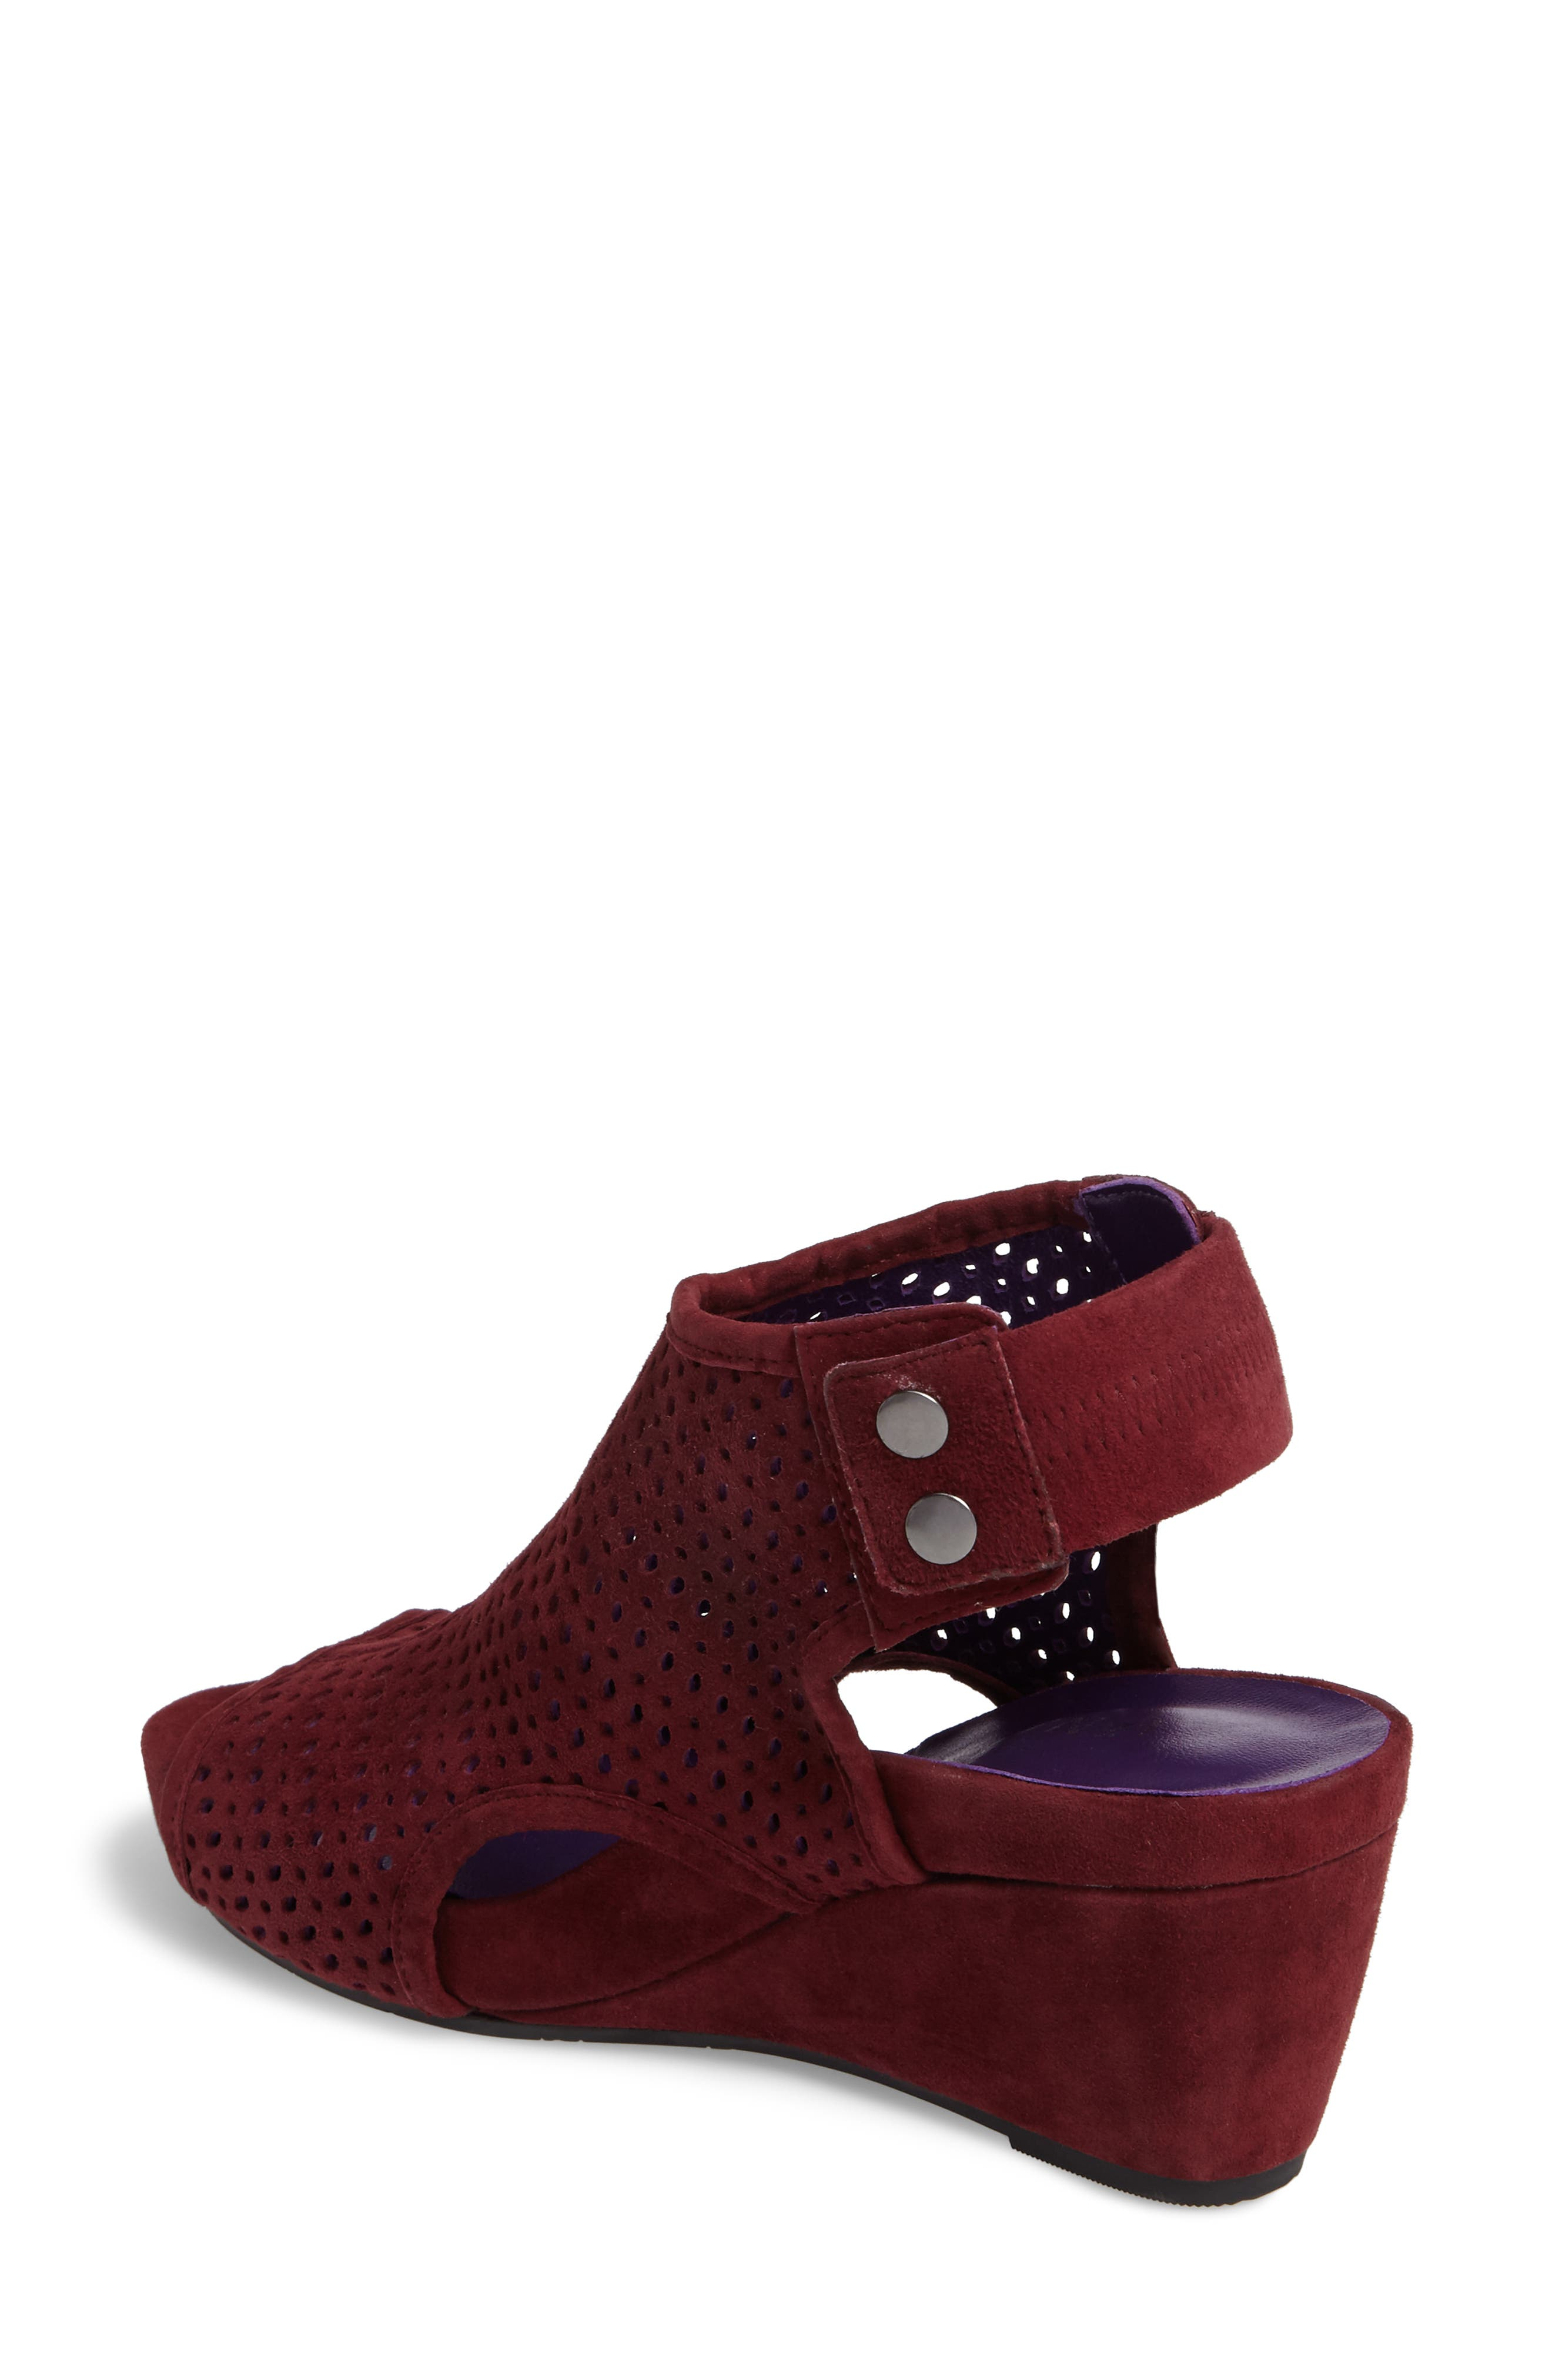 'Inez' Wedge Sandal,                             Alternate thumbnail 2, color,                             Red Suede